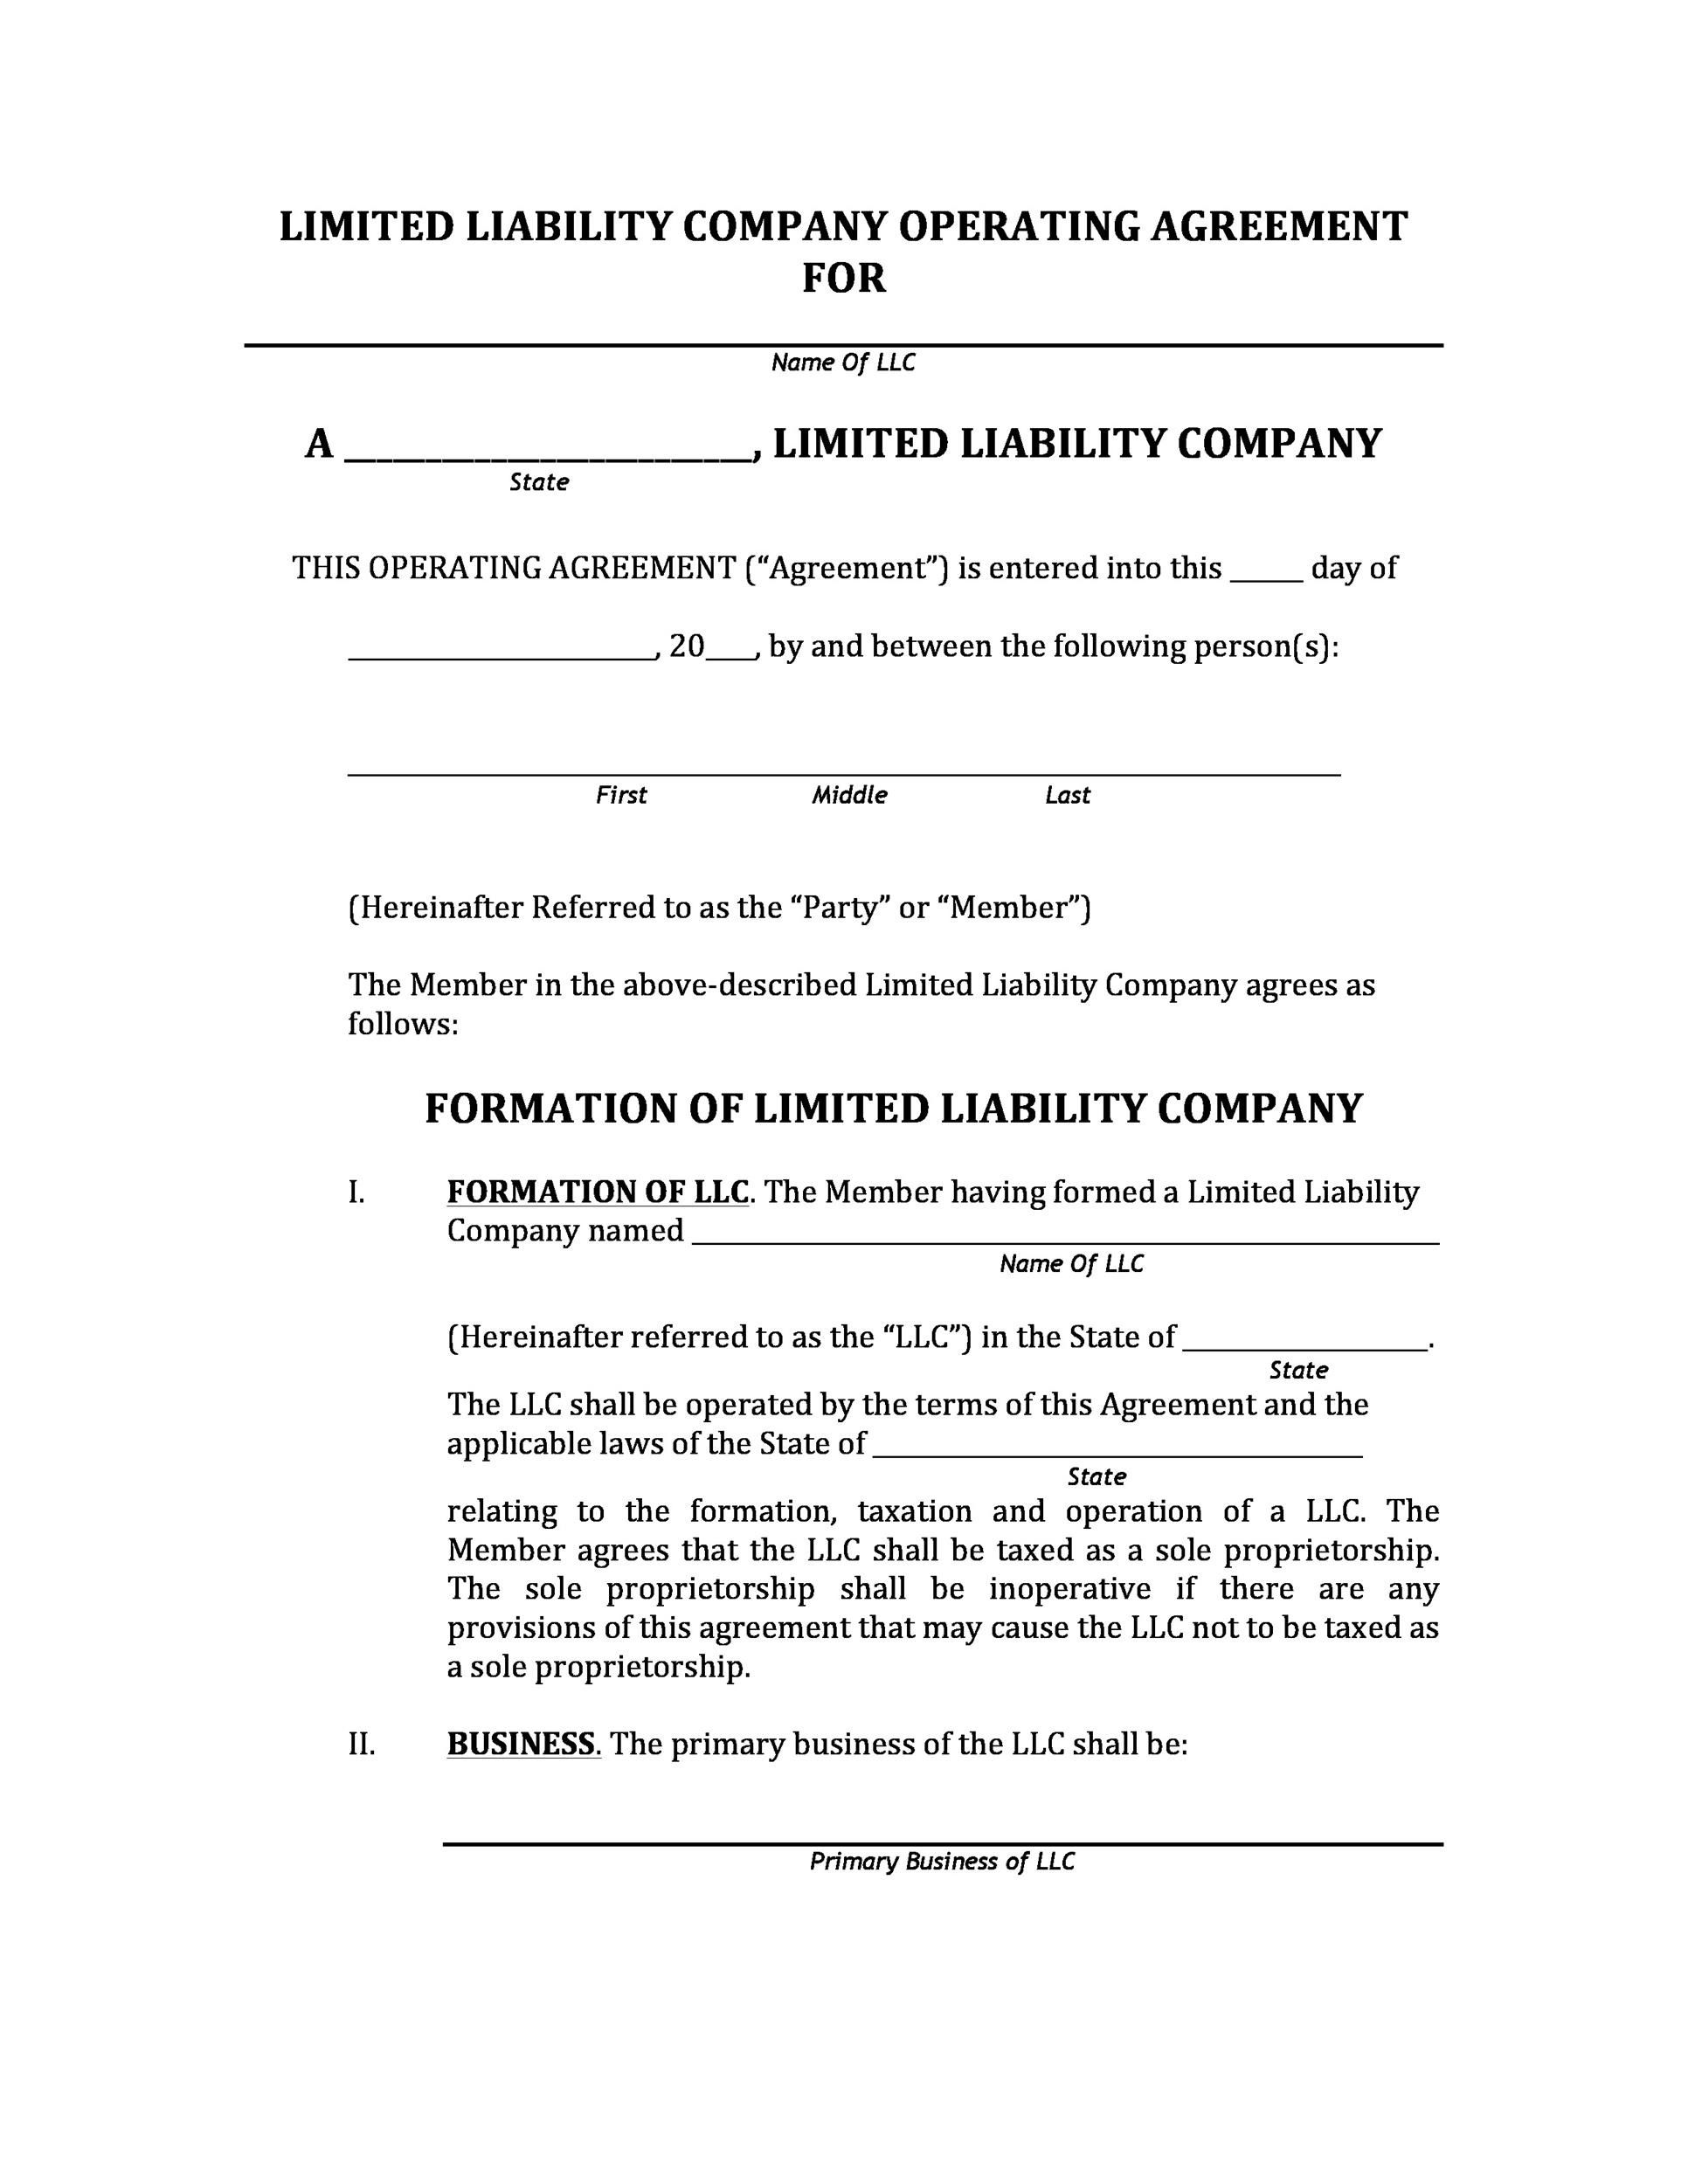 008 Awful Operating Agreement Template For Llc Design  Form Florida TexaFull